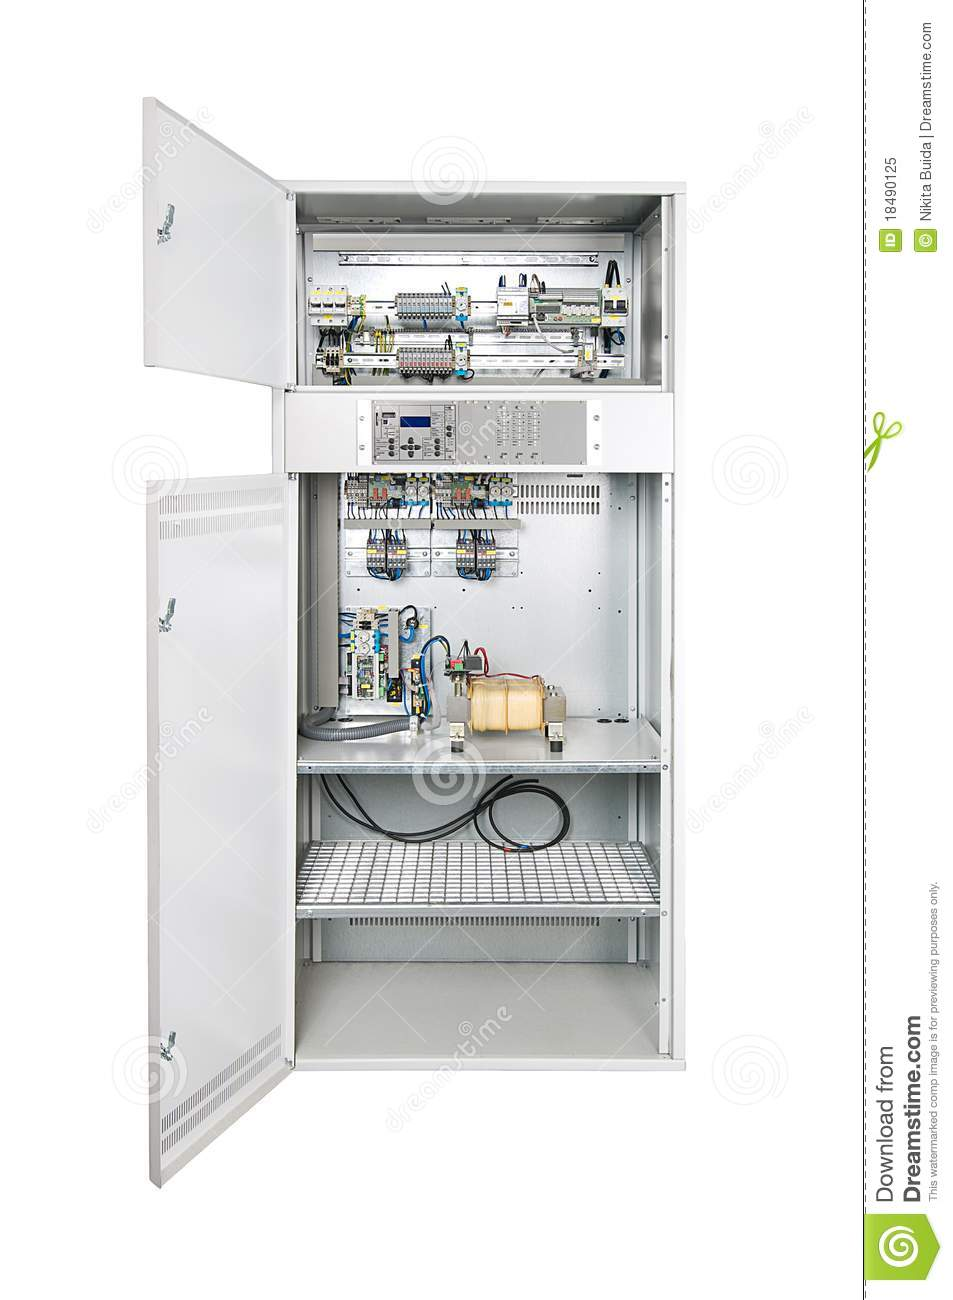 electrical enclosure with open door stock image image of open gear box home fuse box picture open #15